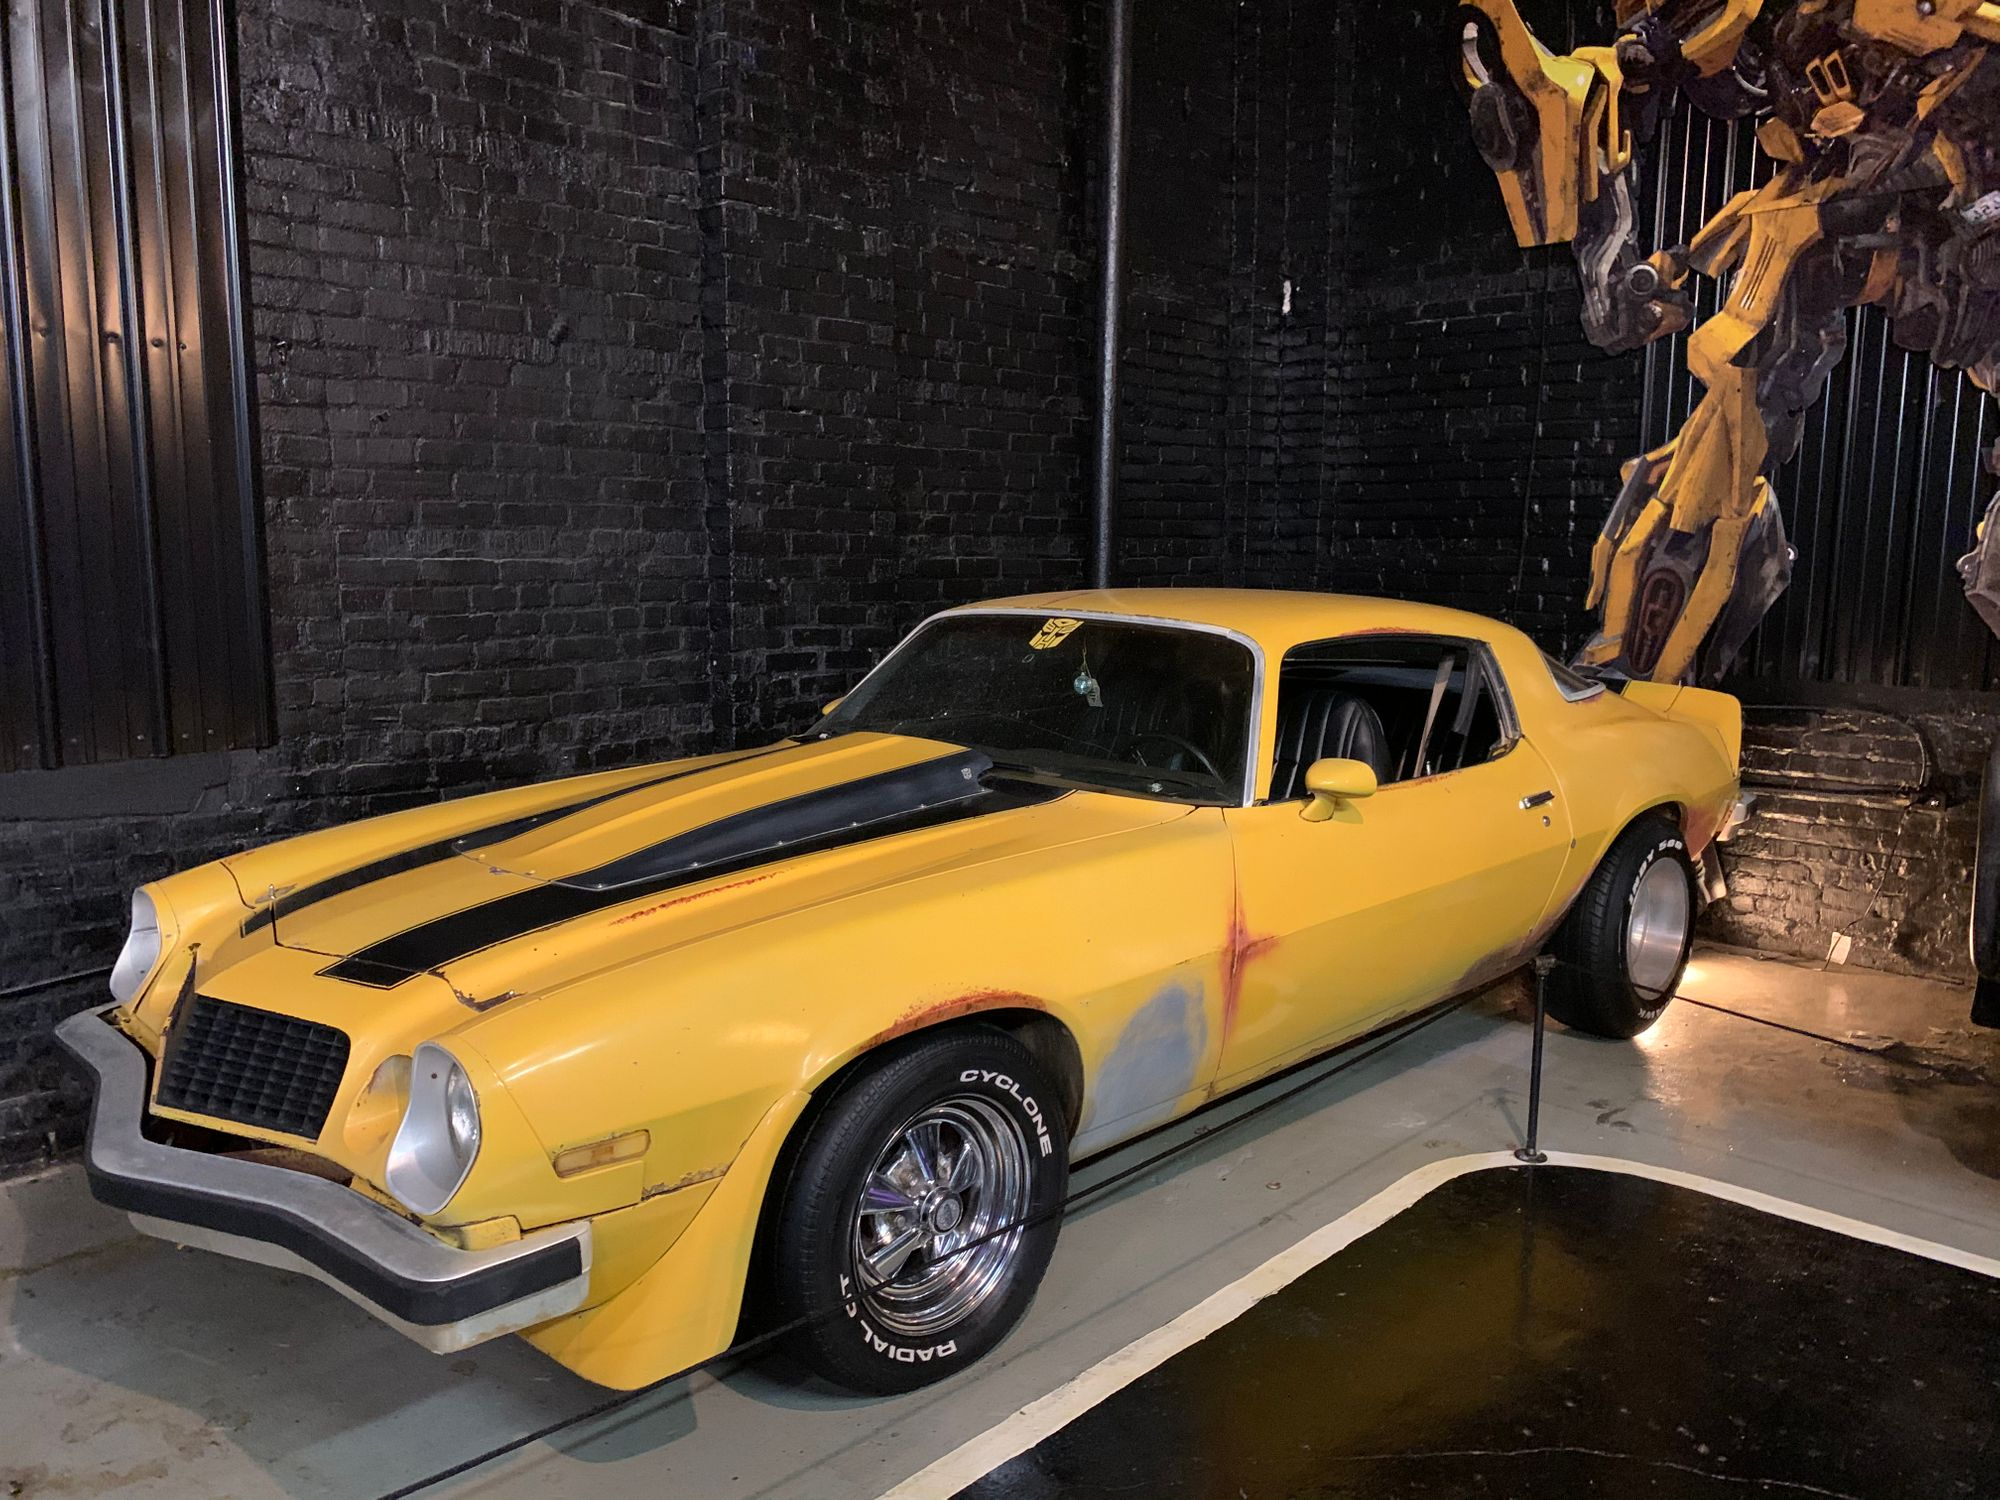 "<img src=""transformers.jpg"" alt=""1977 Chevy Camaro from Transformers"">"